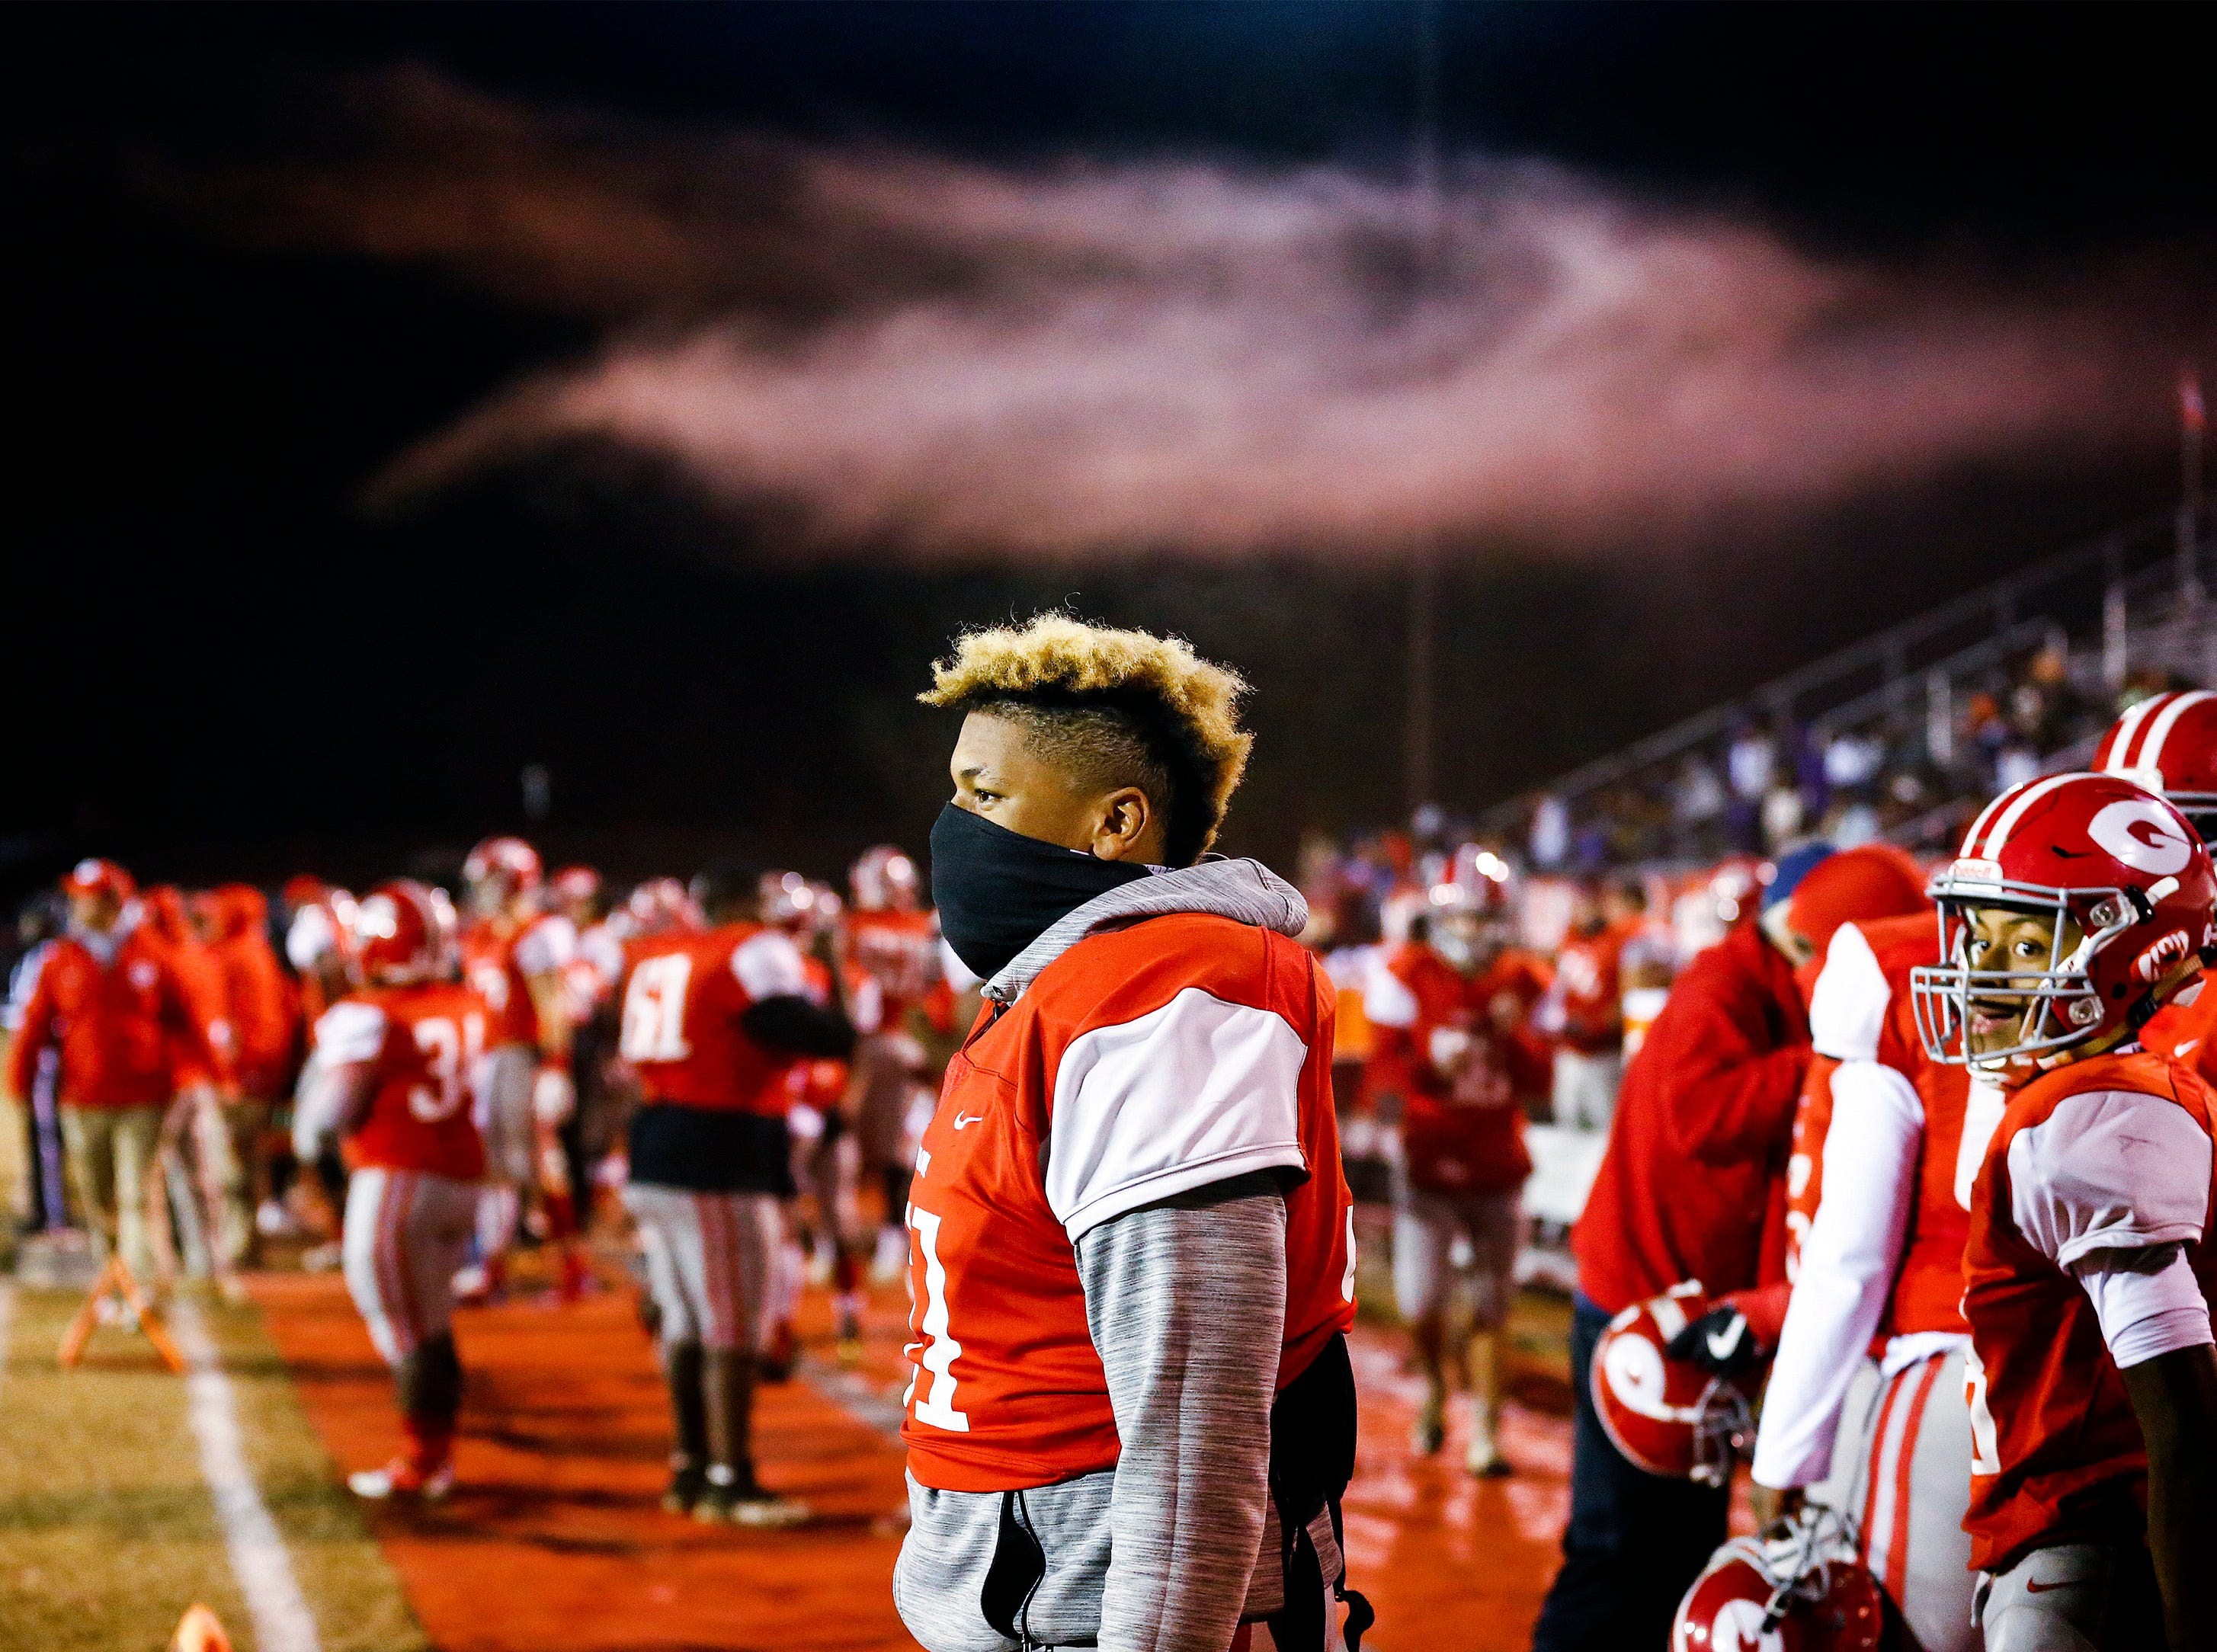 Germantown's Damian Hairston (middle) on the sidelines before taking on Whitehaven during action of their 6A state semifinal game in Germantown, Tenn.